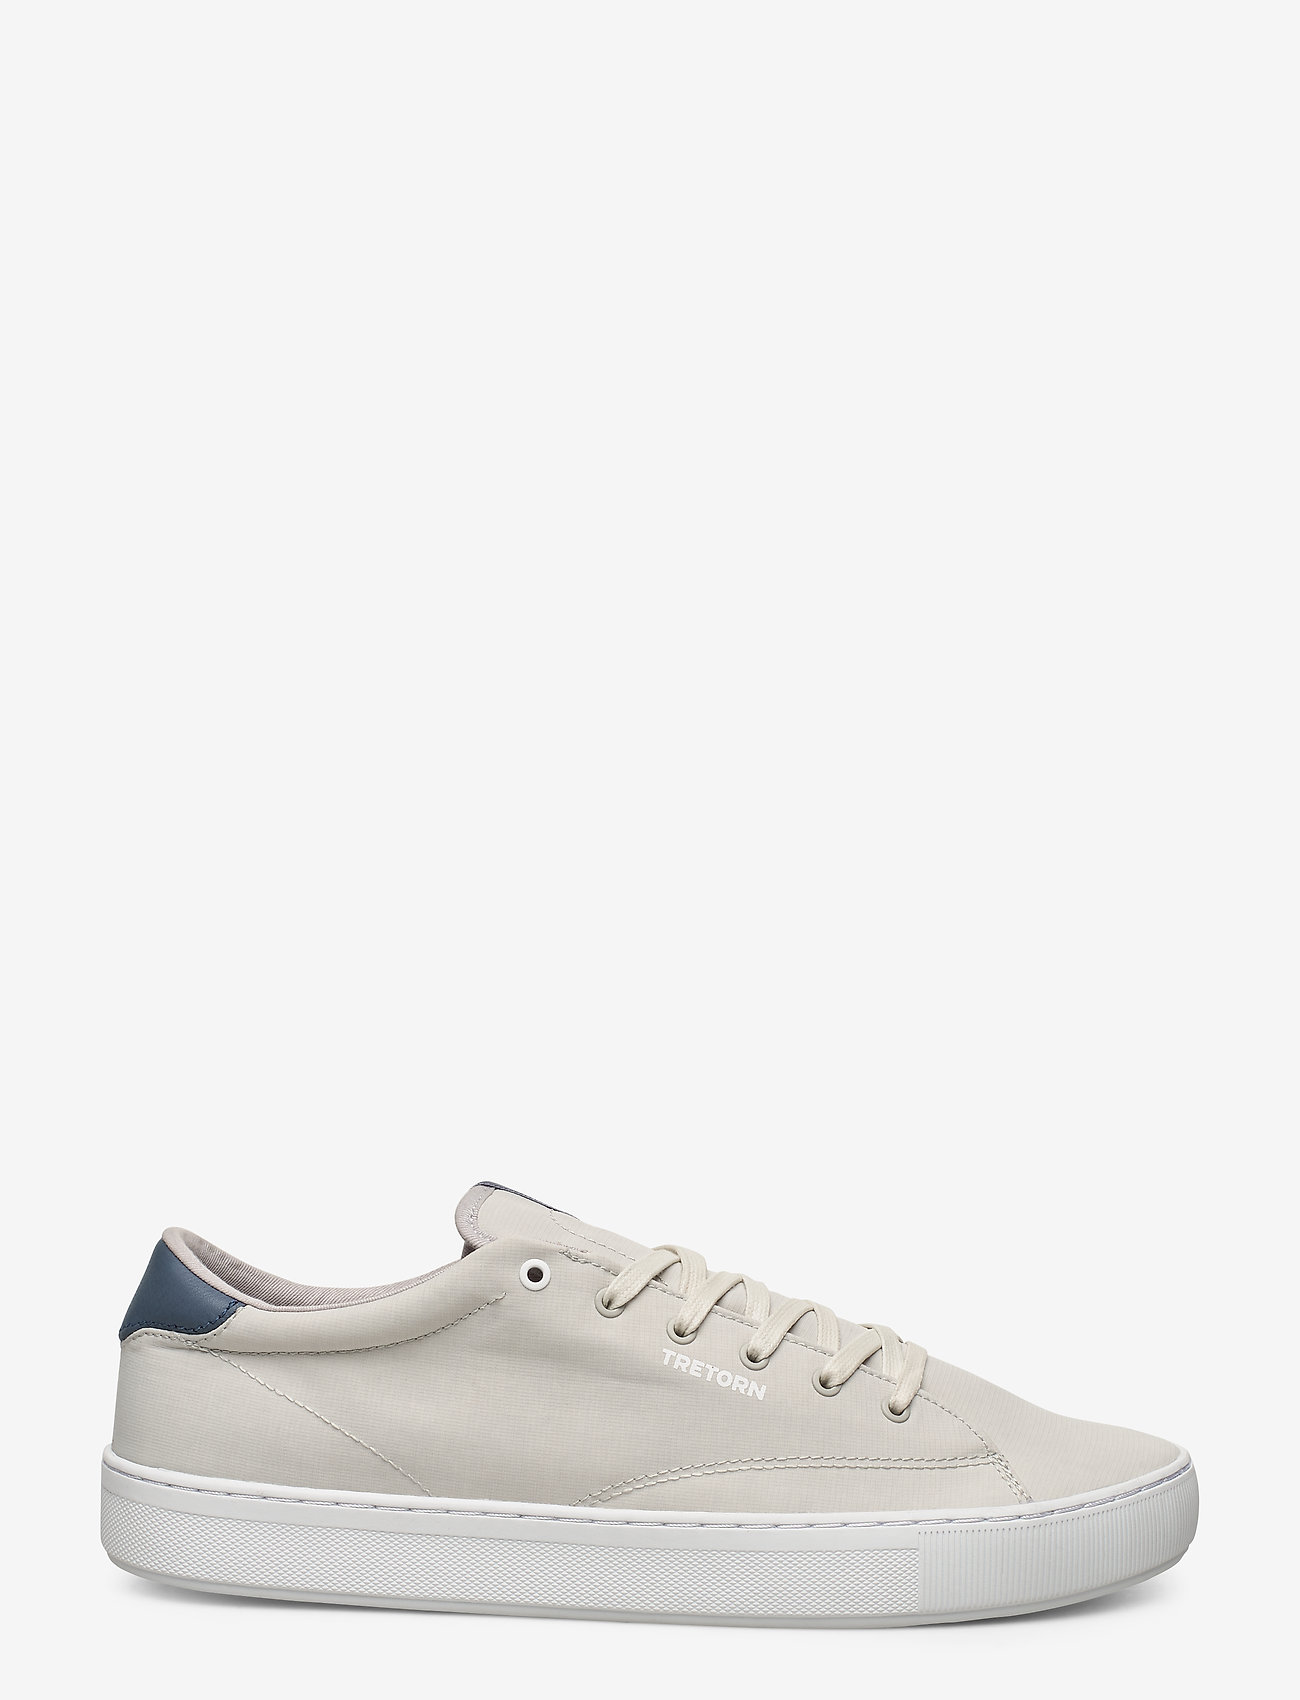 Tretorn - TOURNAMENT LOW OCEAN NET - låga sneakers - 043/chalk/stone - 1